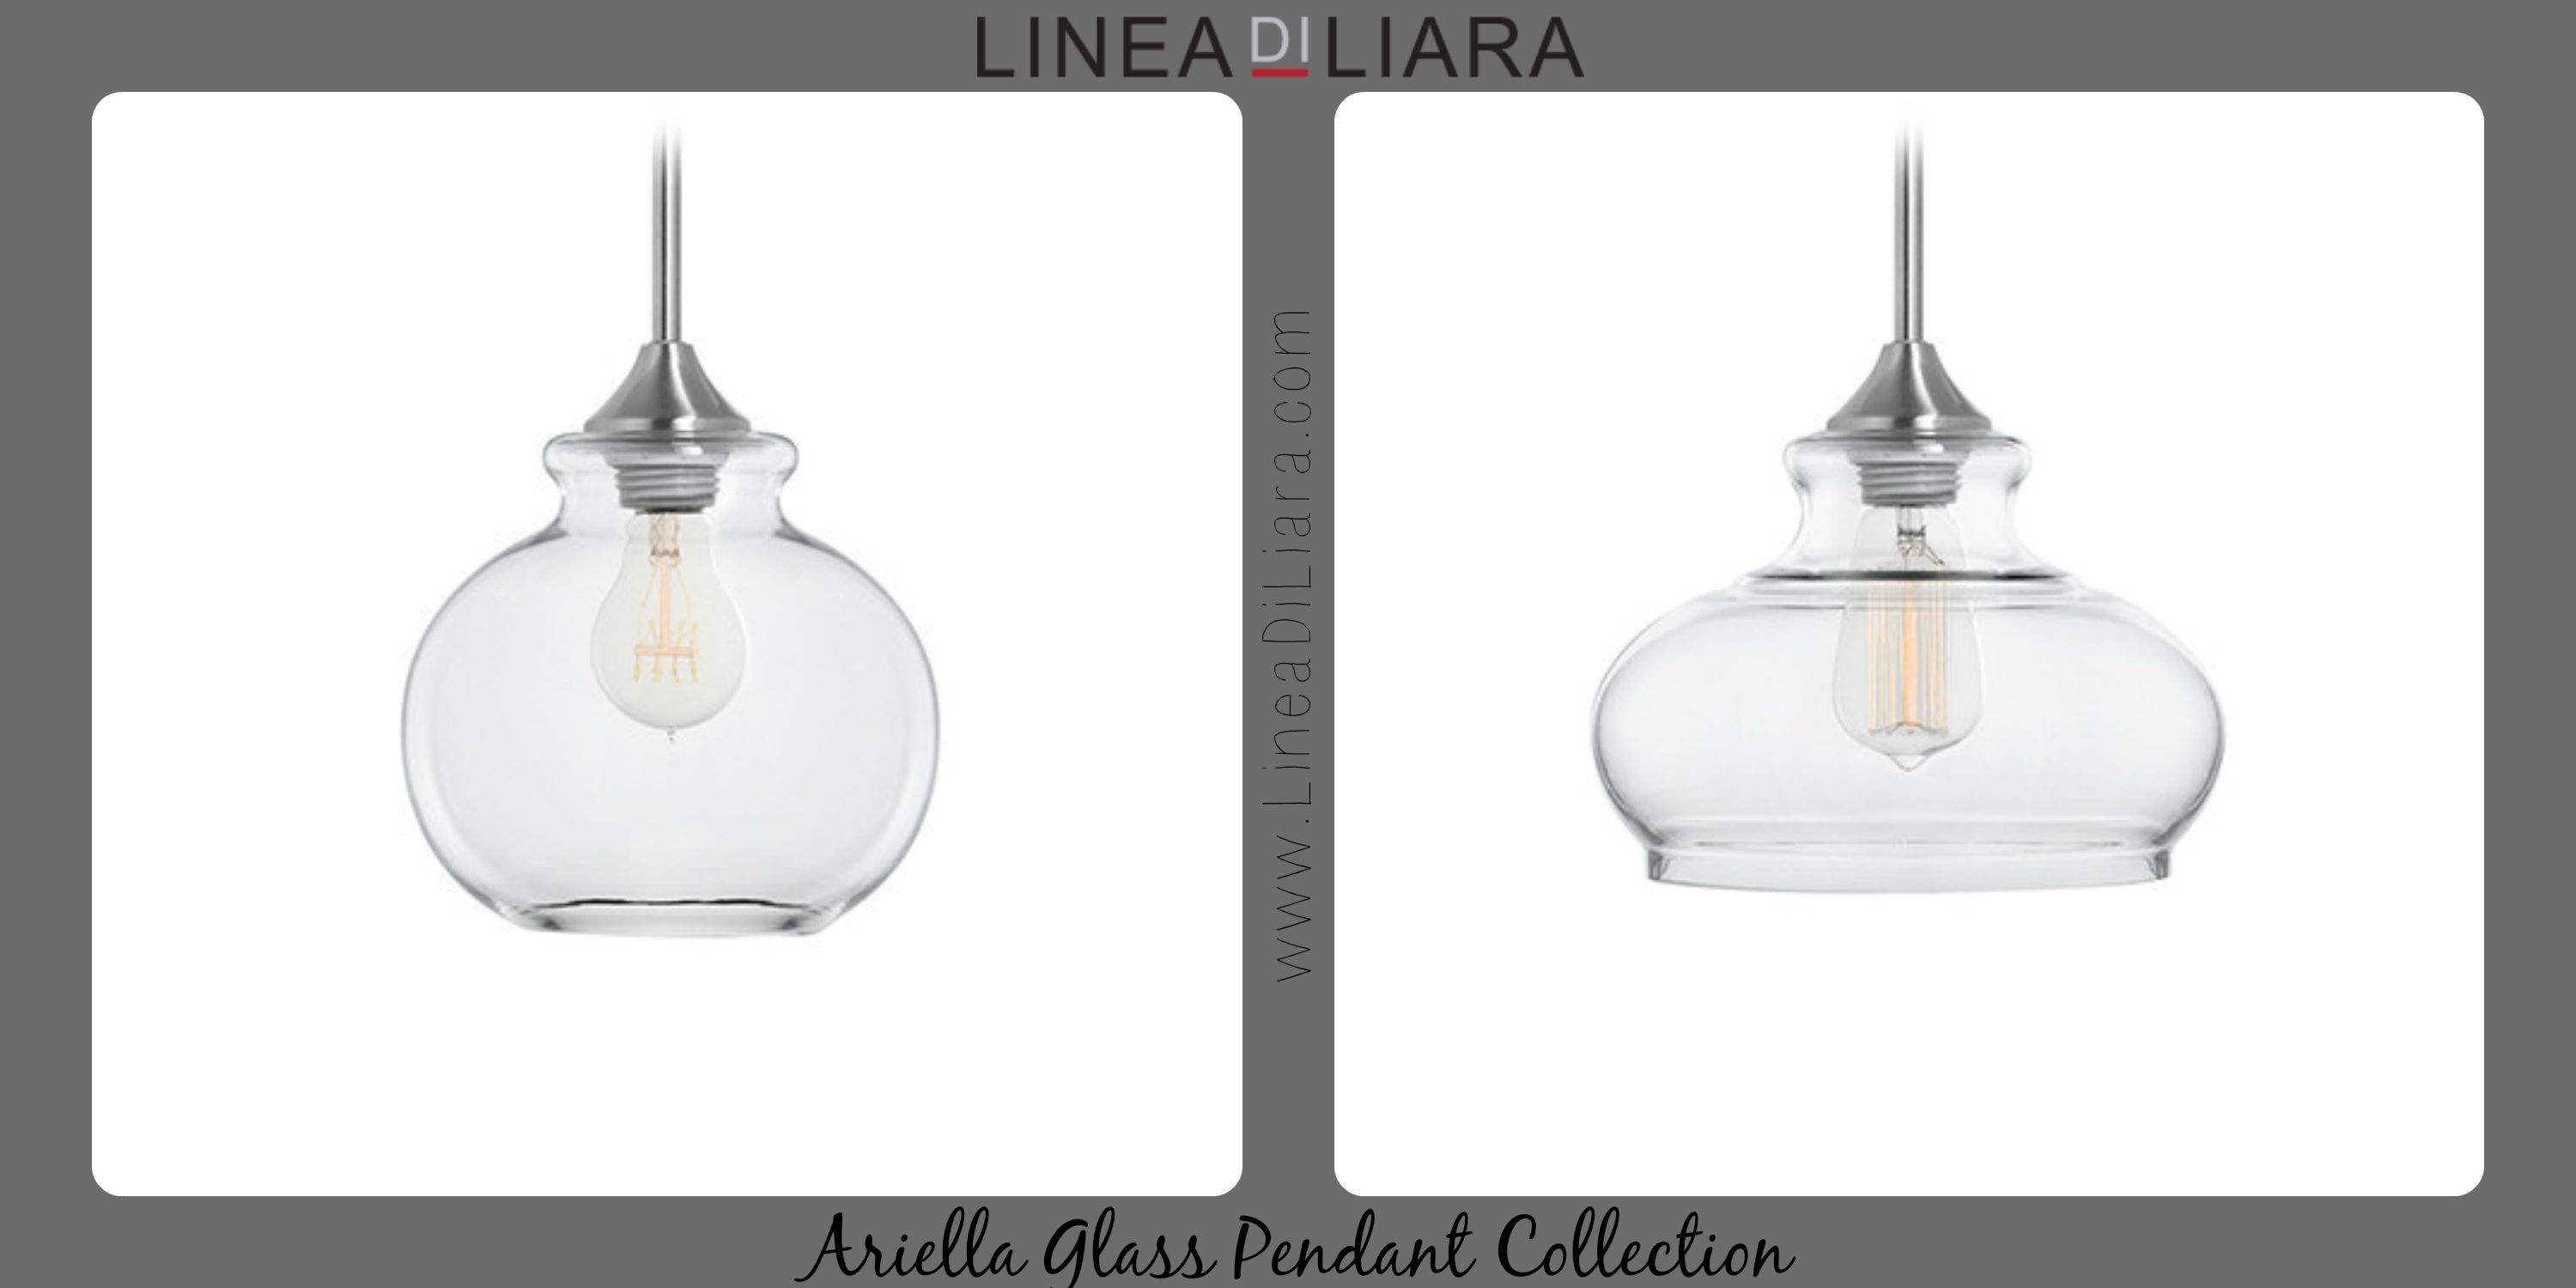 Ariella Glass Pendant Lighting Collection Brushed Nickel By Linea - Pendant light collections